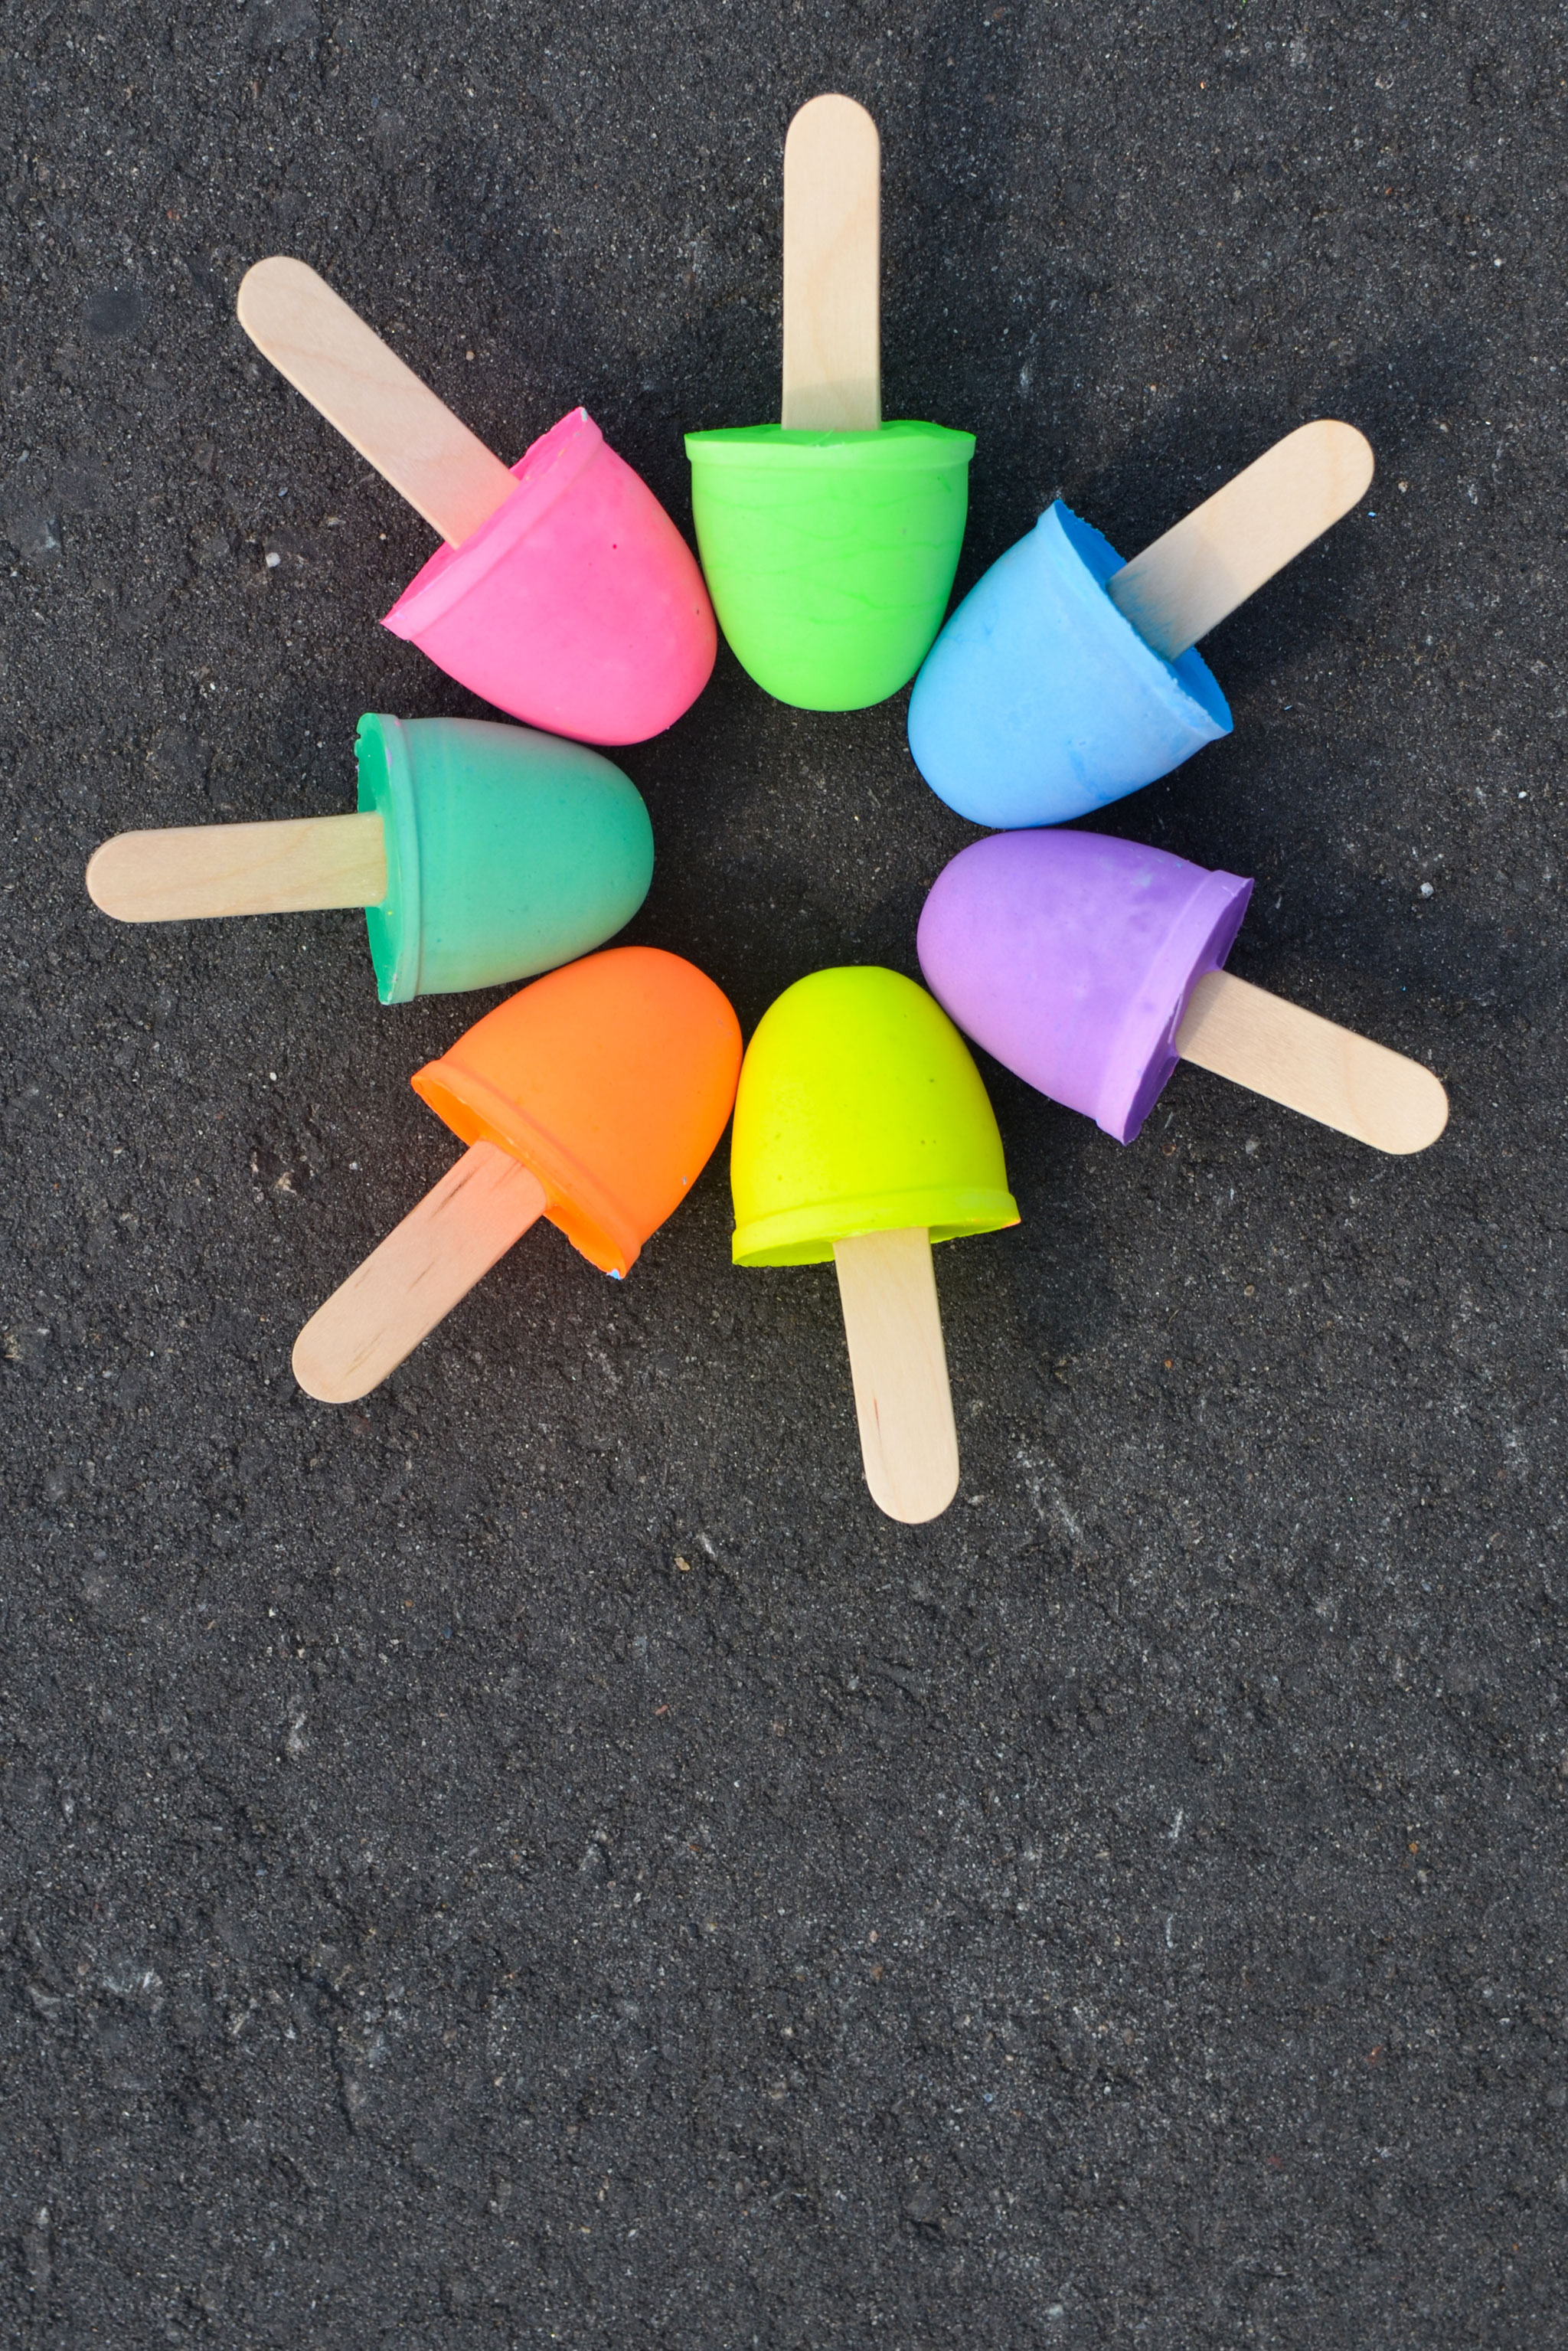 Mix up a batch of homemade sidewalk chalk - Project Nursery